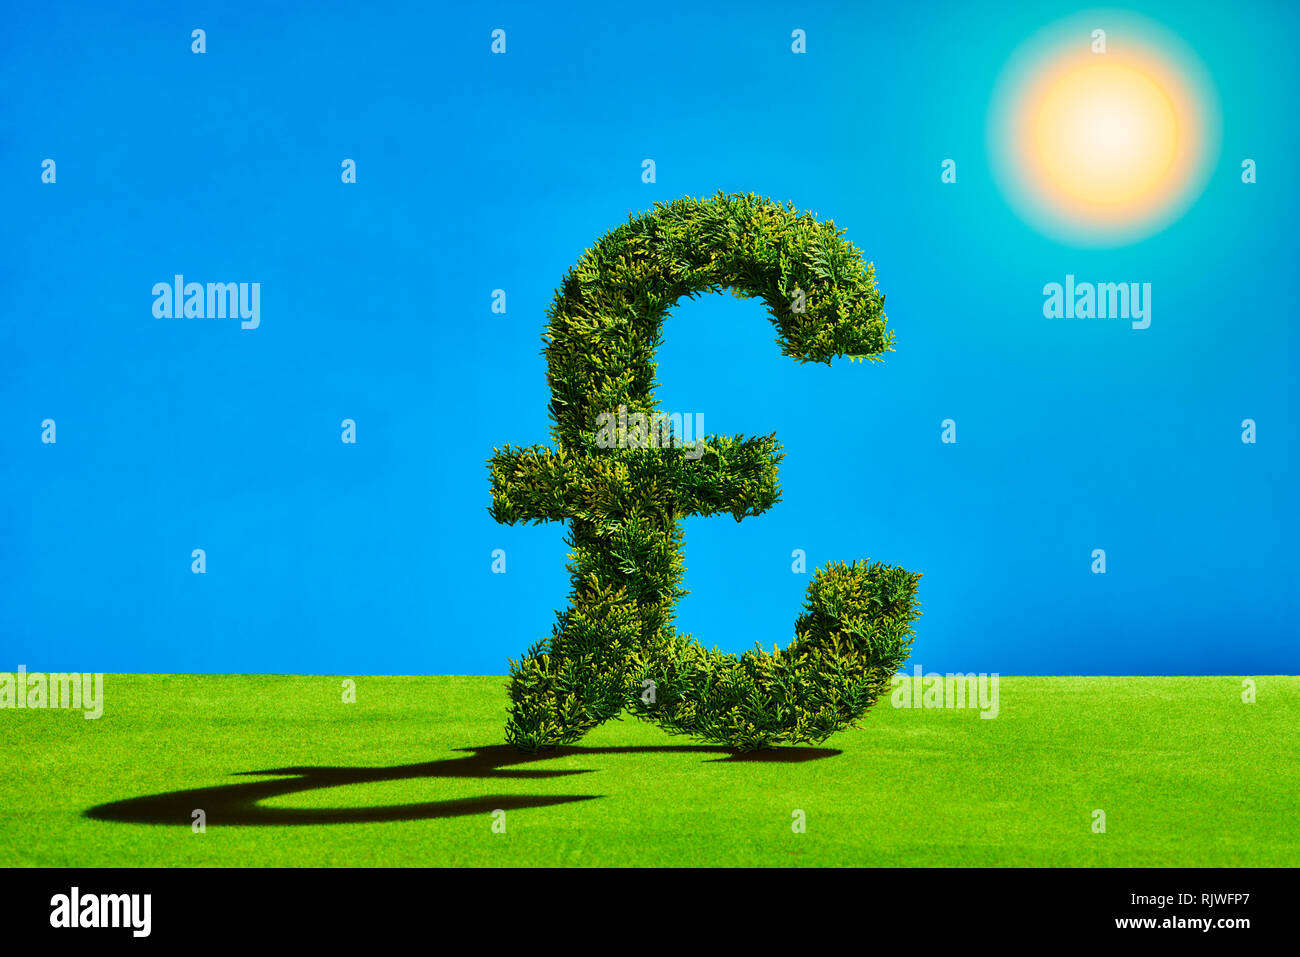 Topiary Tree in the Shape of a Pound Symbol Stock Photo